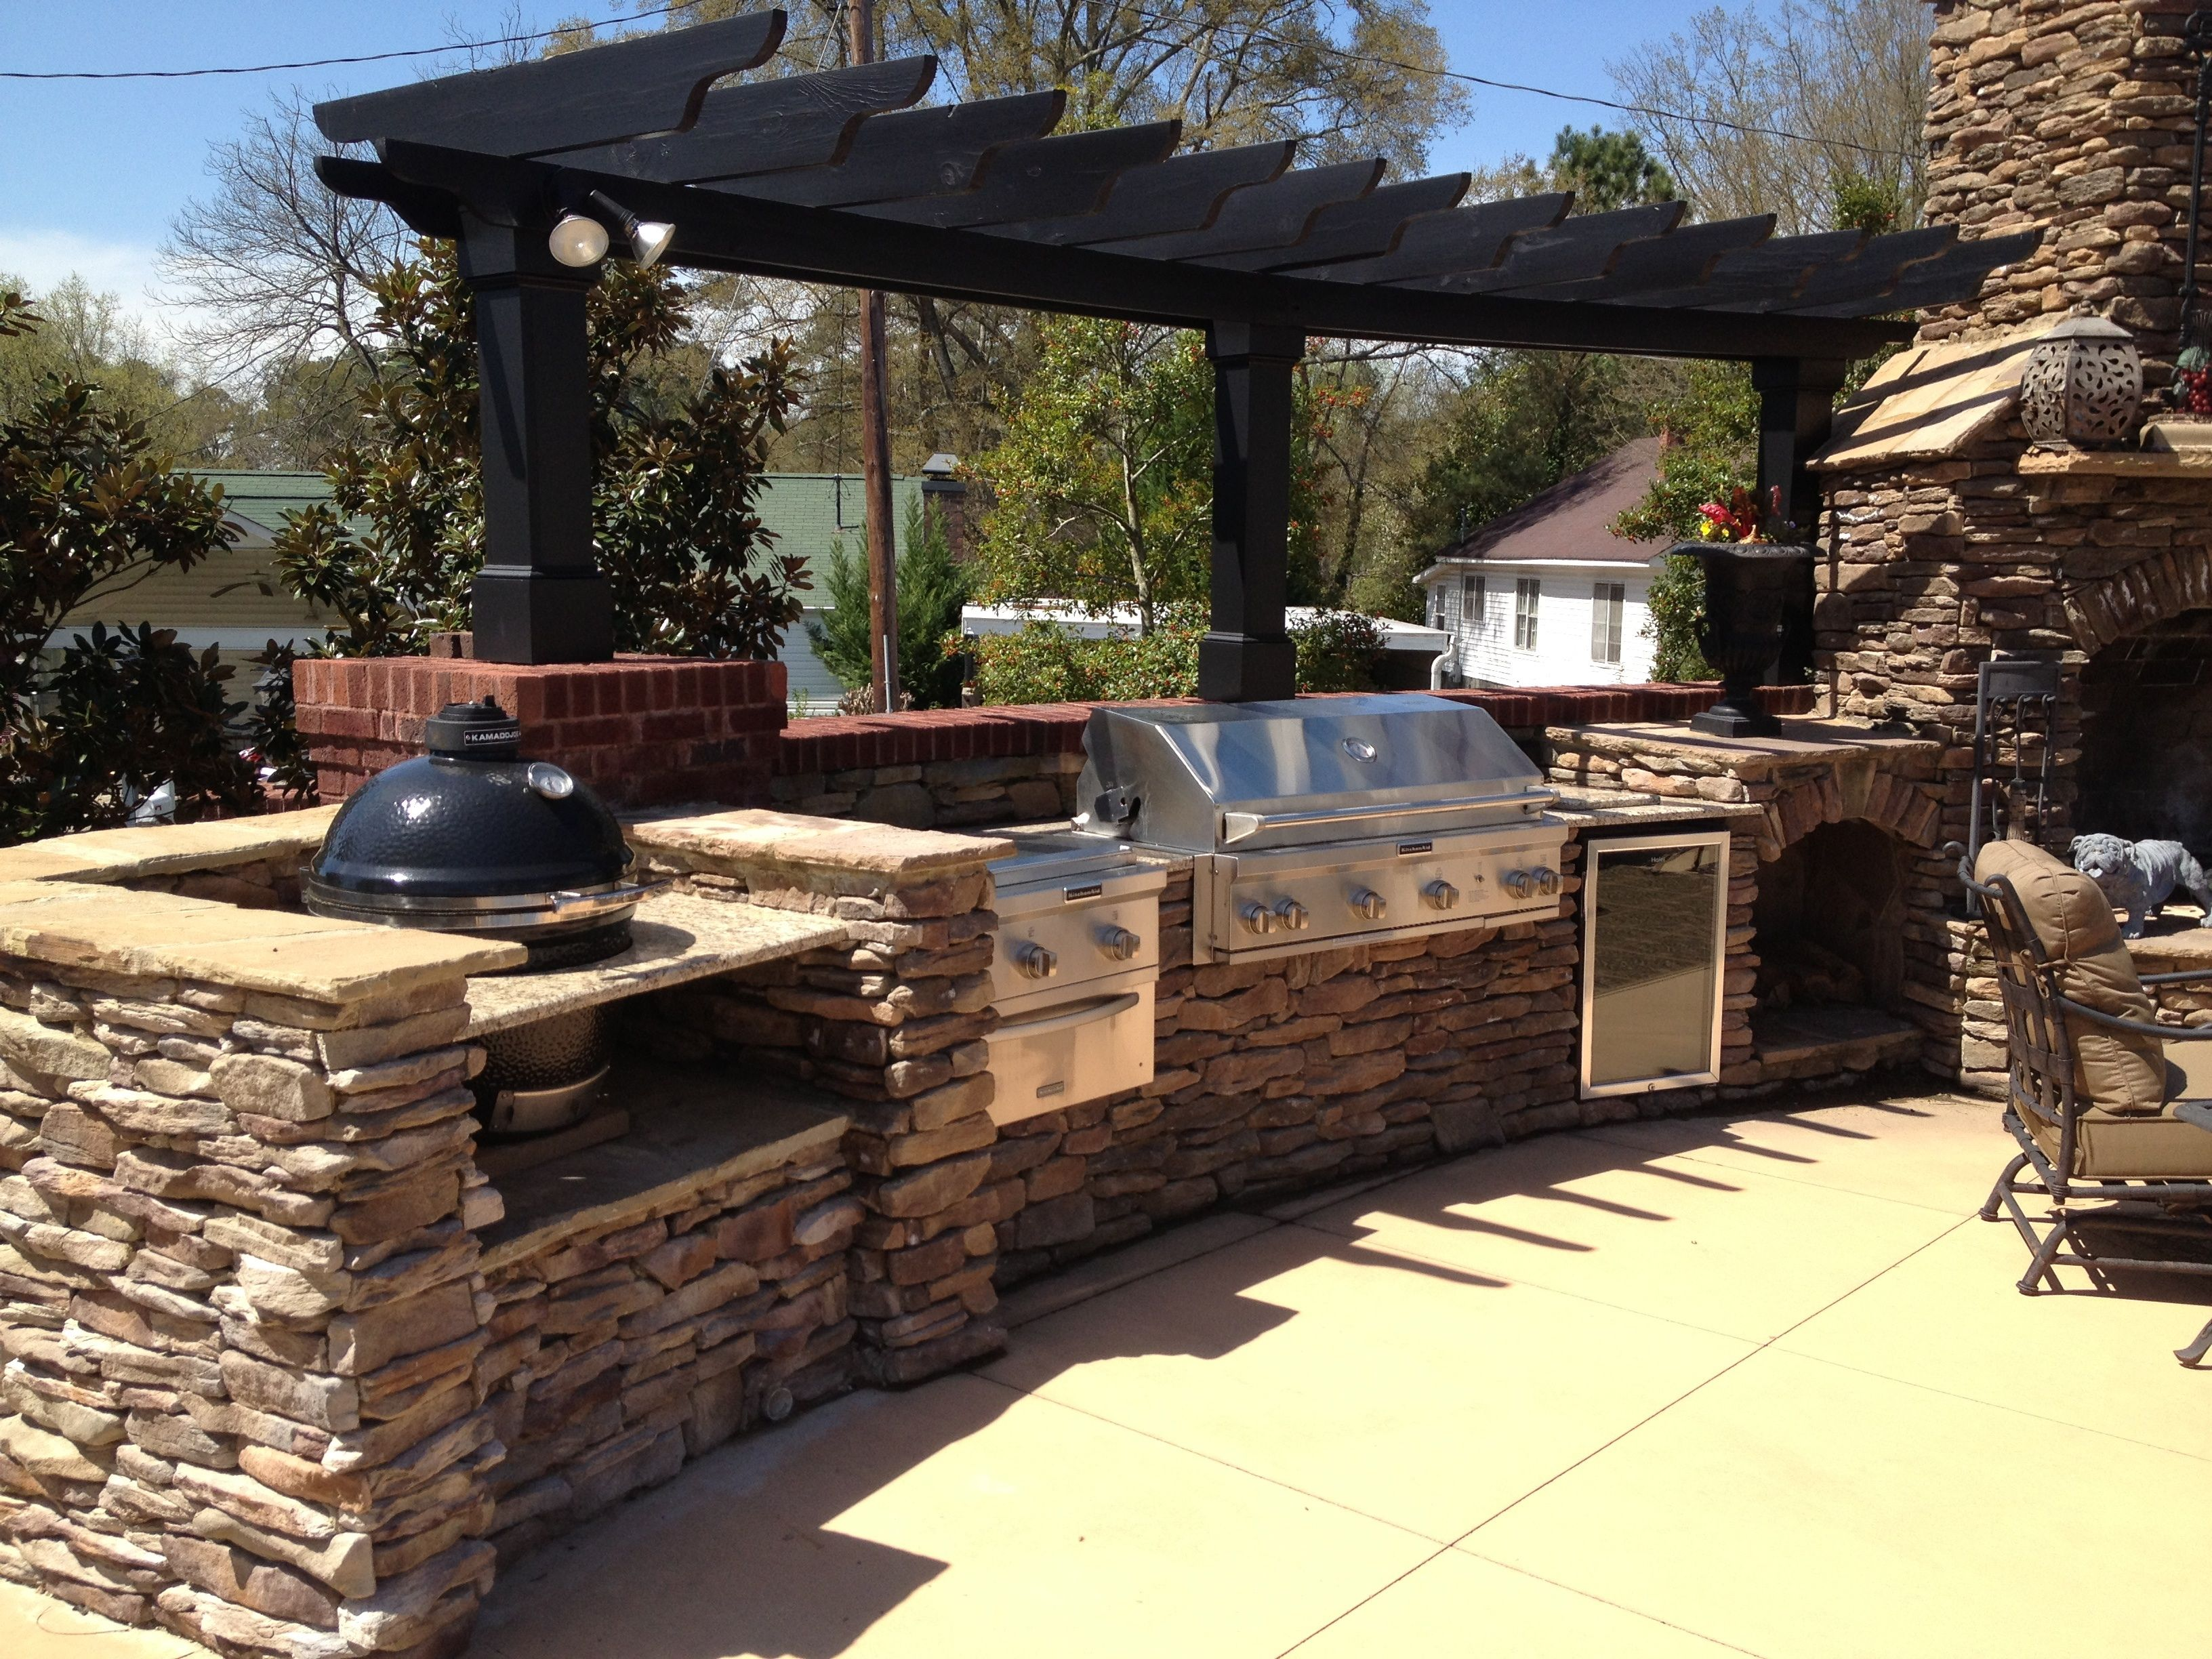 outdoor bbq kitchen outdoor remodel outdoor kitchen countertops backyard fireplace on outdoor kitchen bbq id=74508